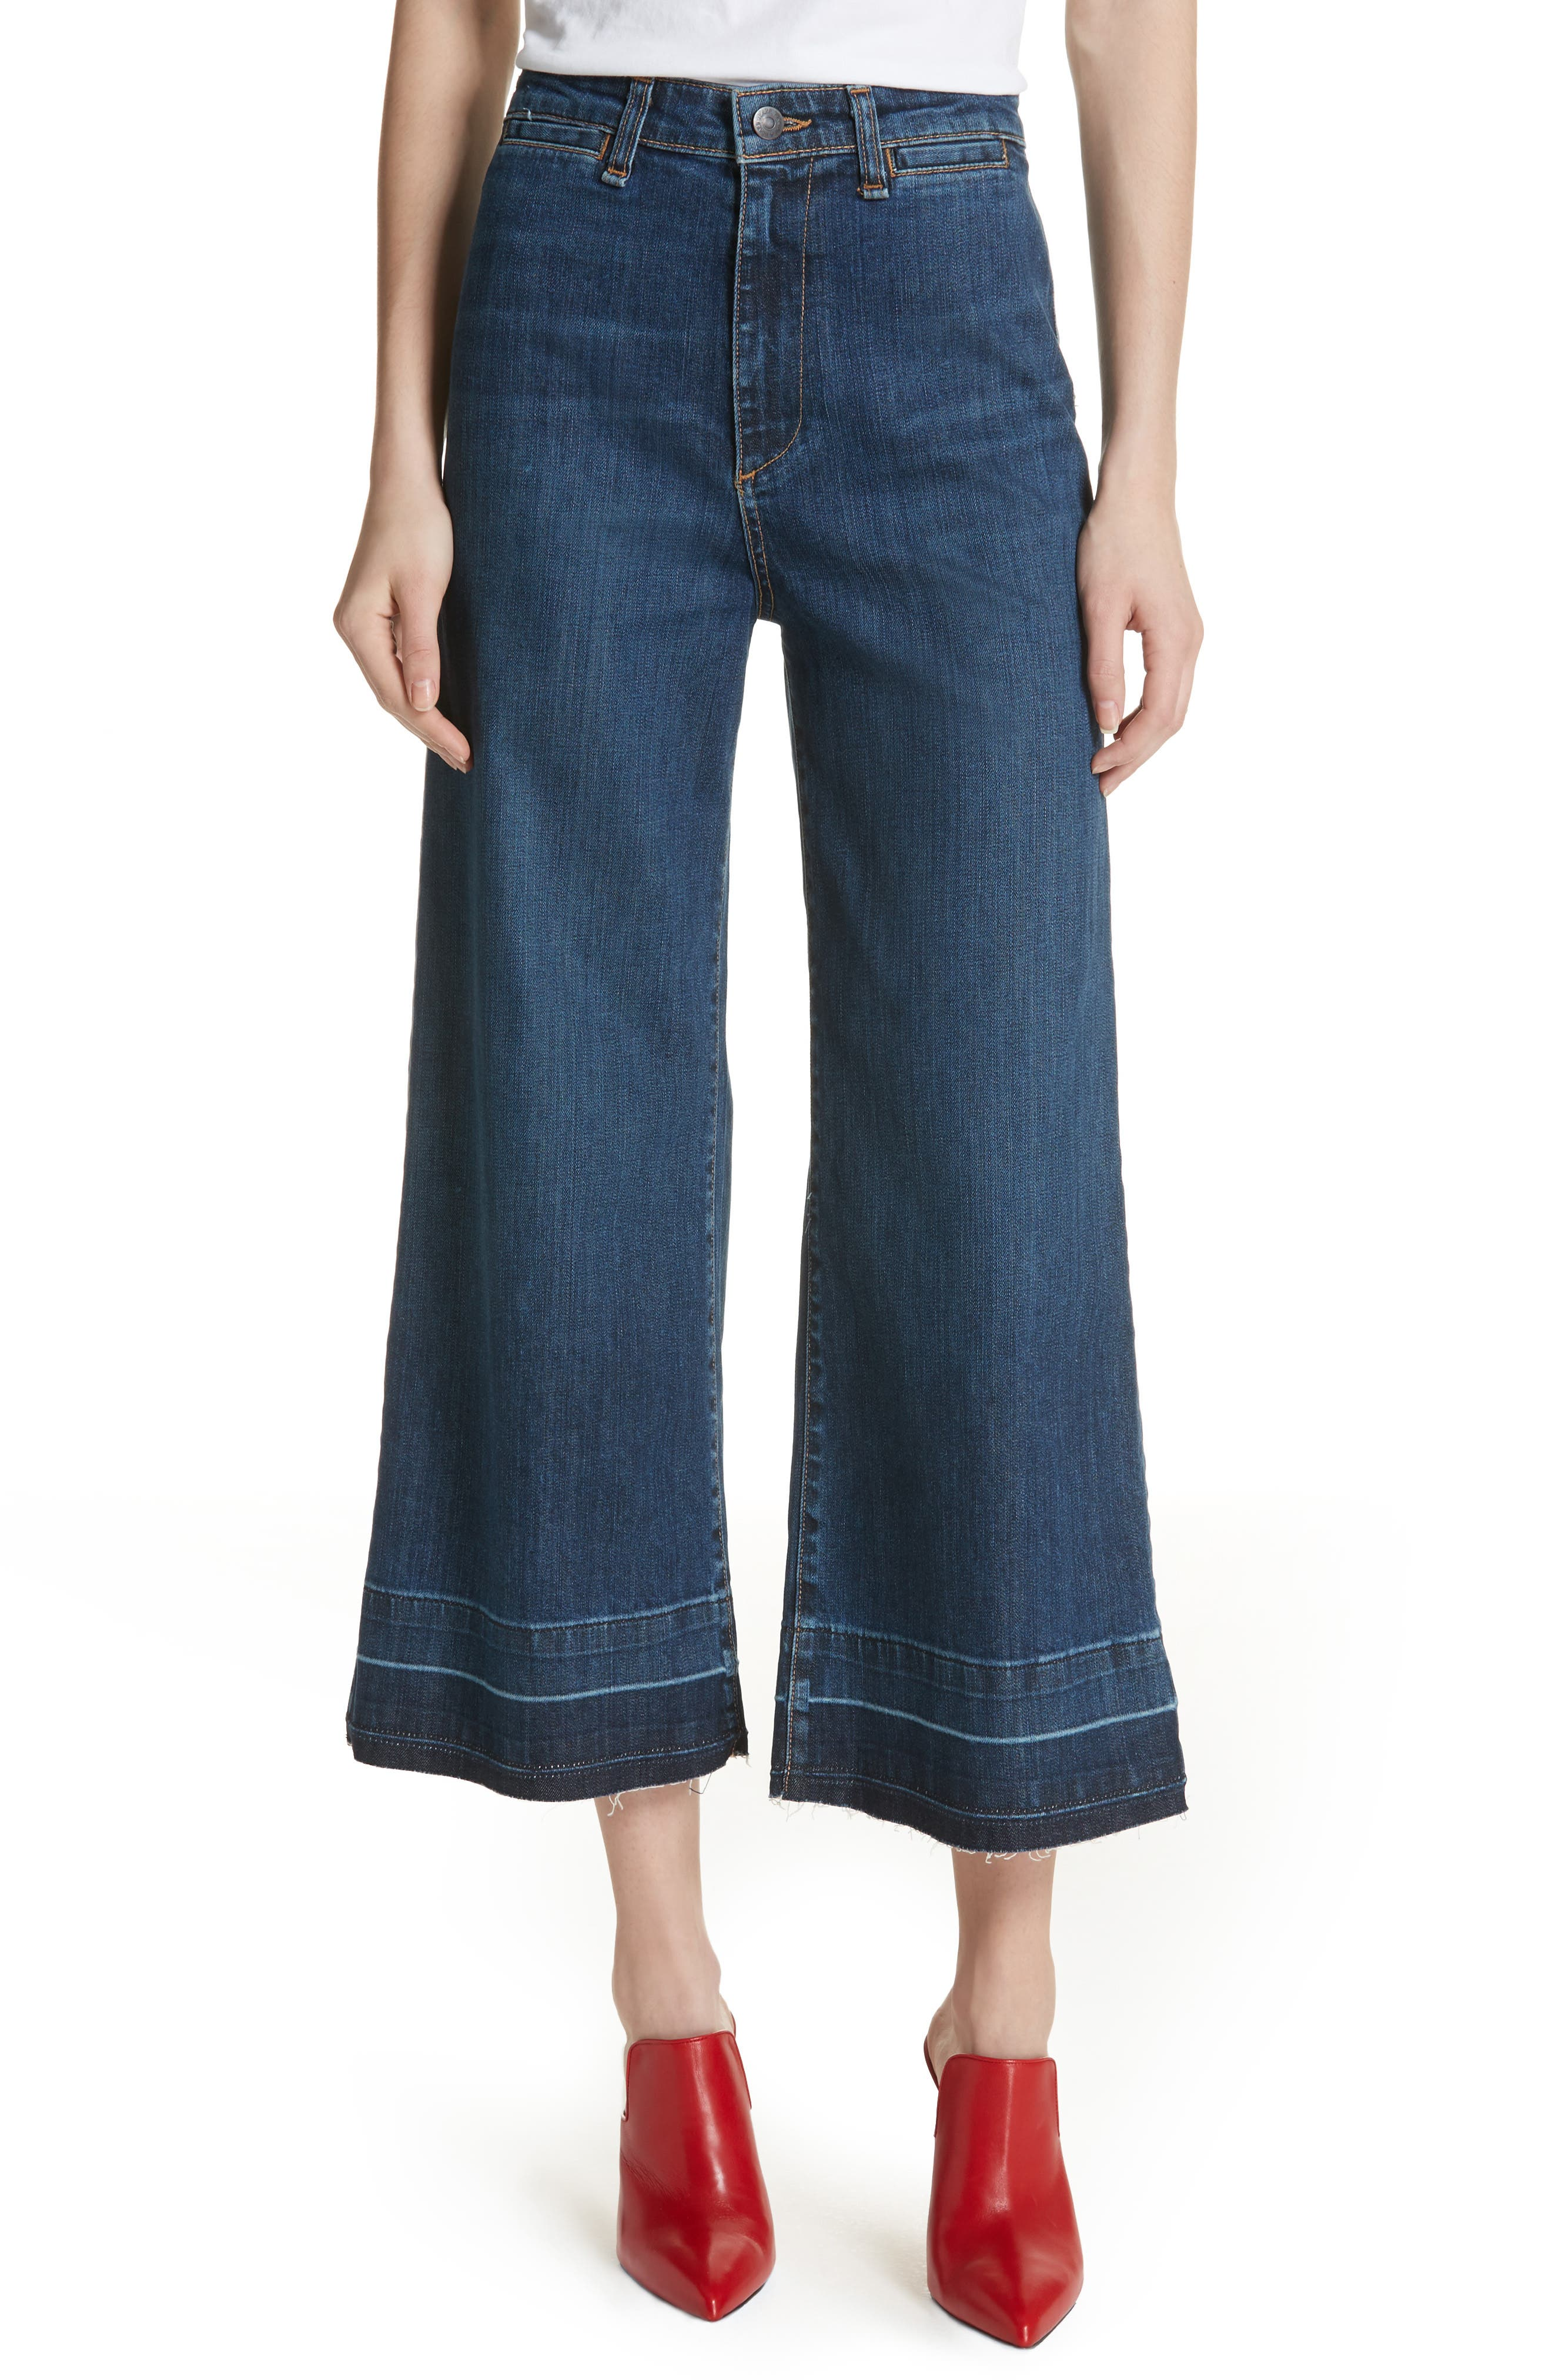 Veronica Beard Ali High Waist Gaucho Jeans (Vintage Wash)